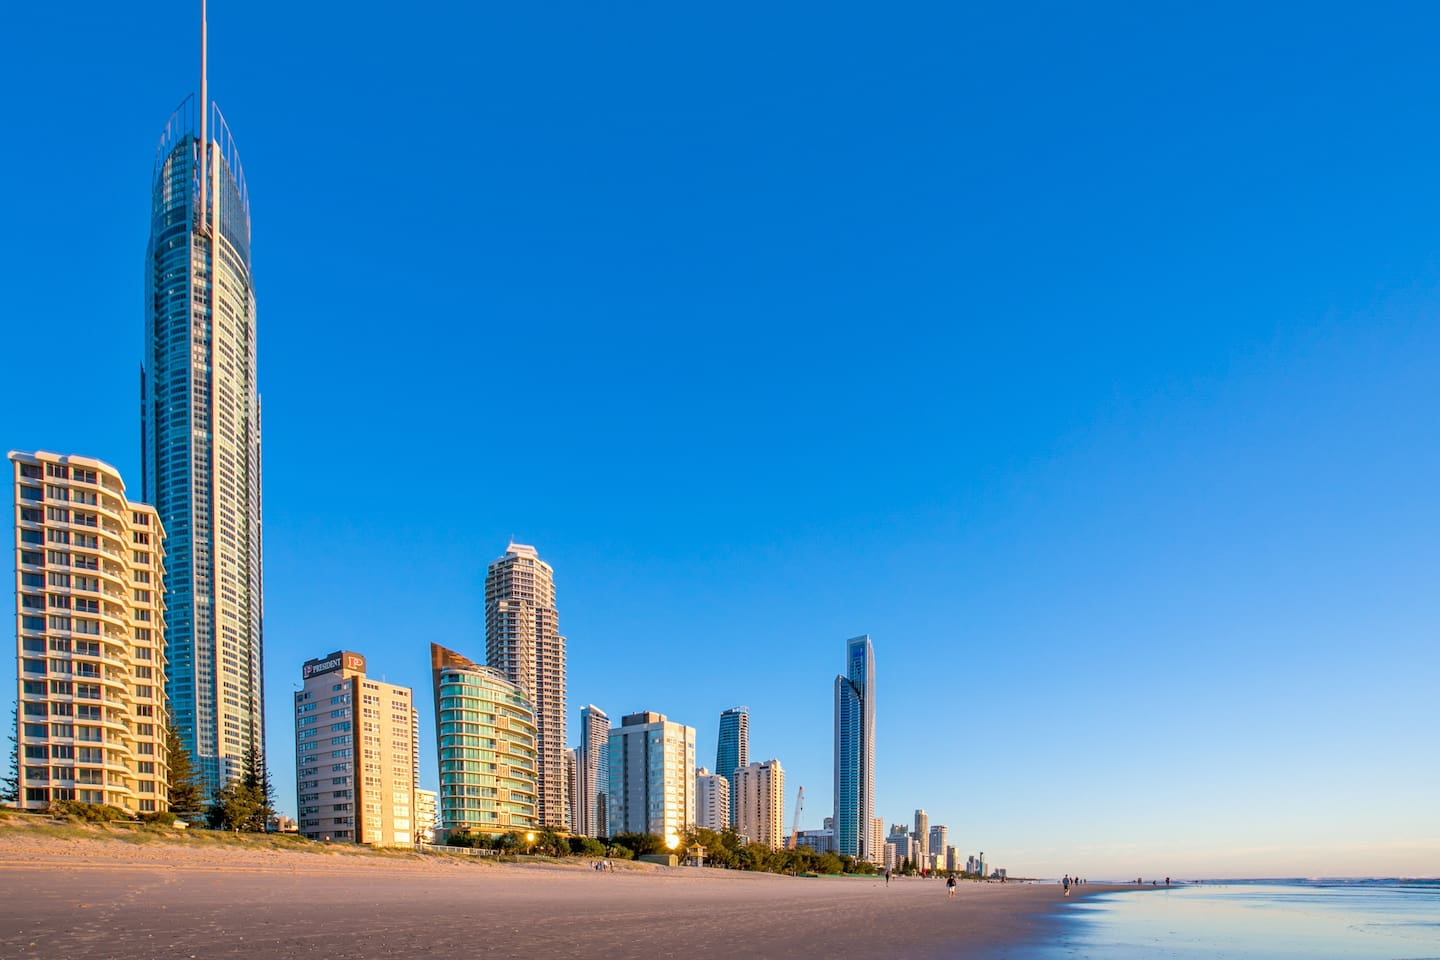 Q1 Building and Surfers Paradise beach